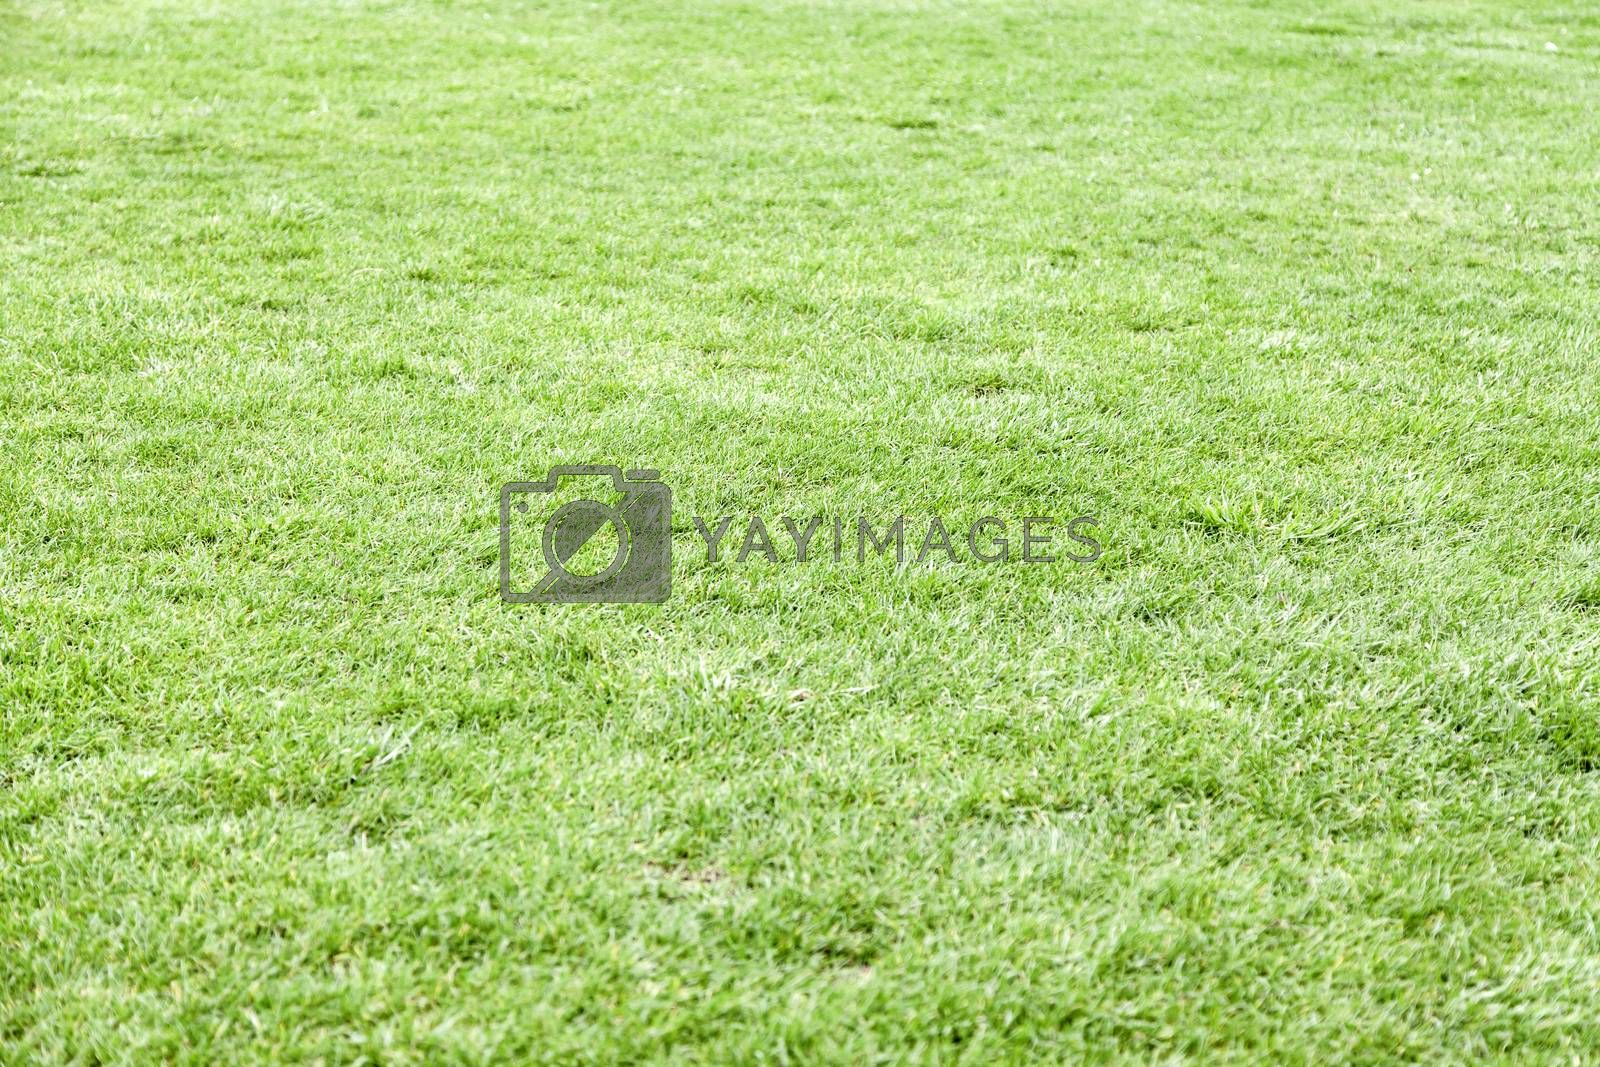 Green grass, detail of grass in a field